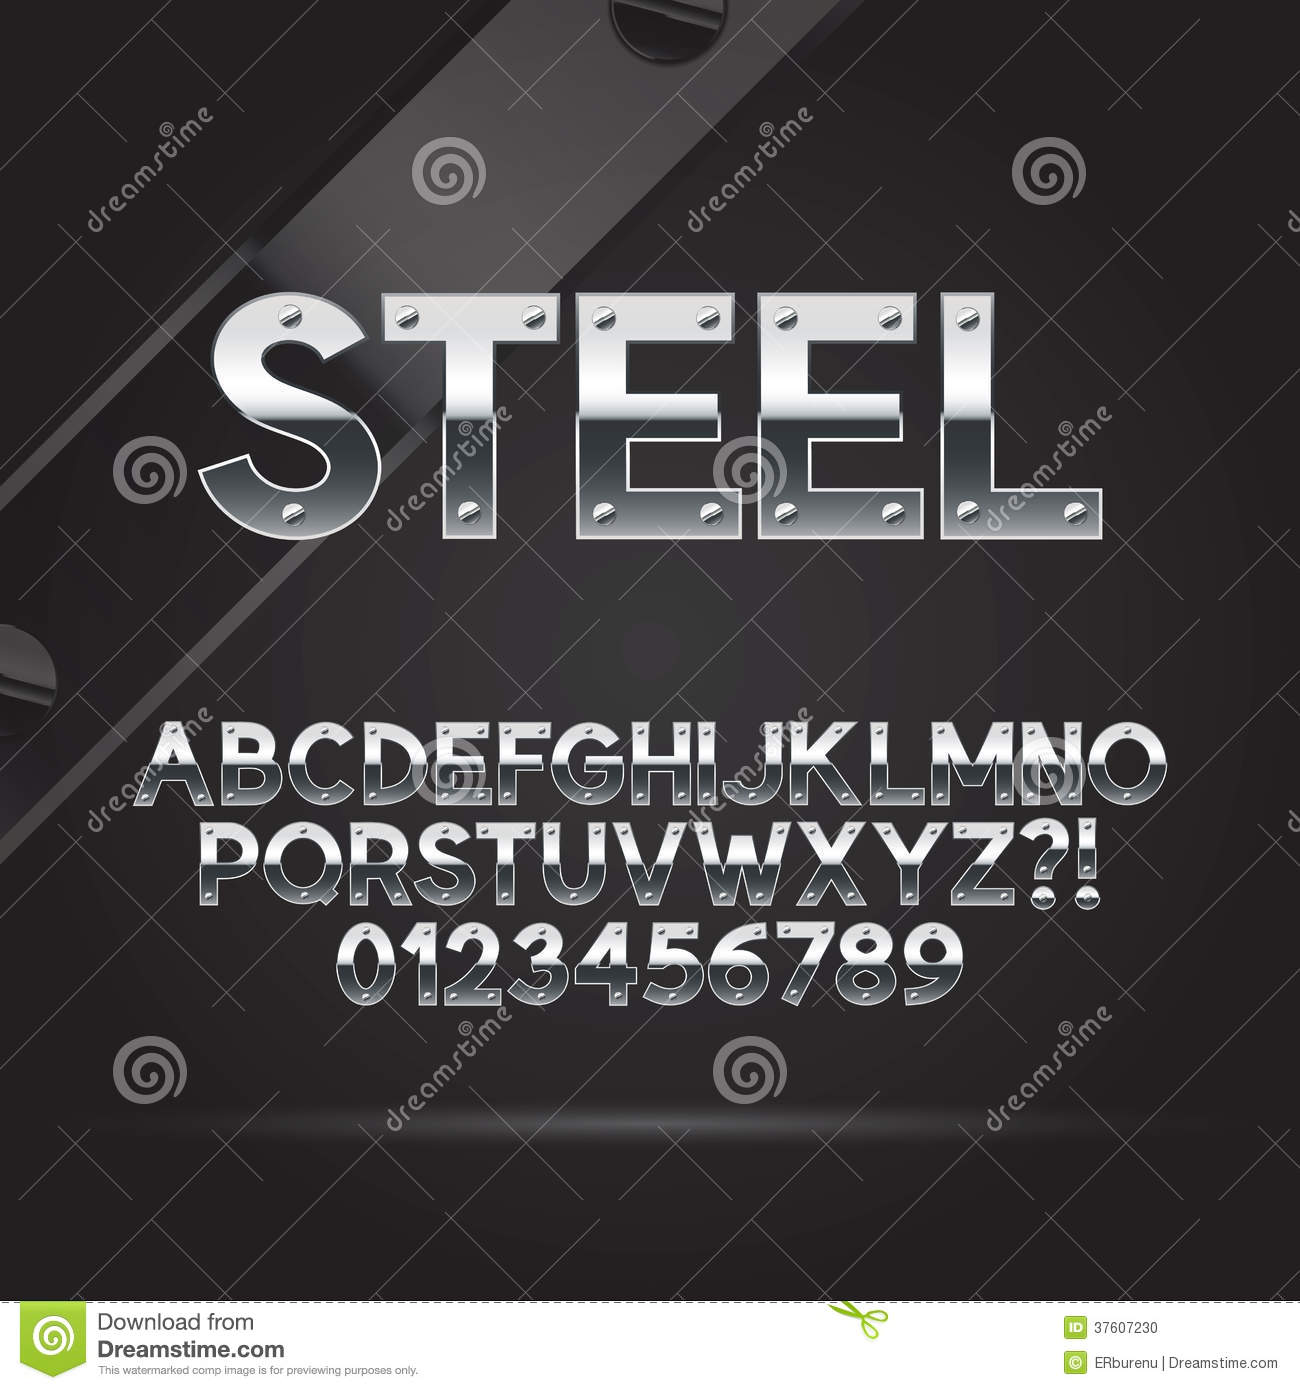 Steel Font and Numbers, Eps 10 Vector, Editable for any Background.